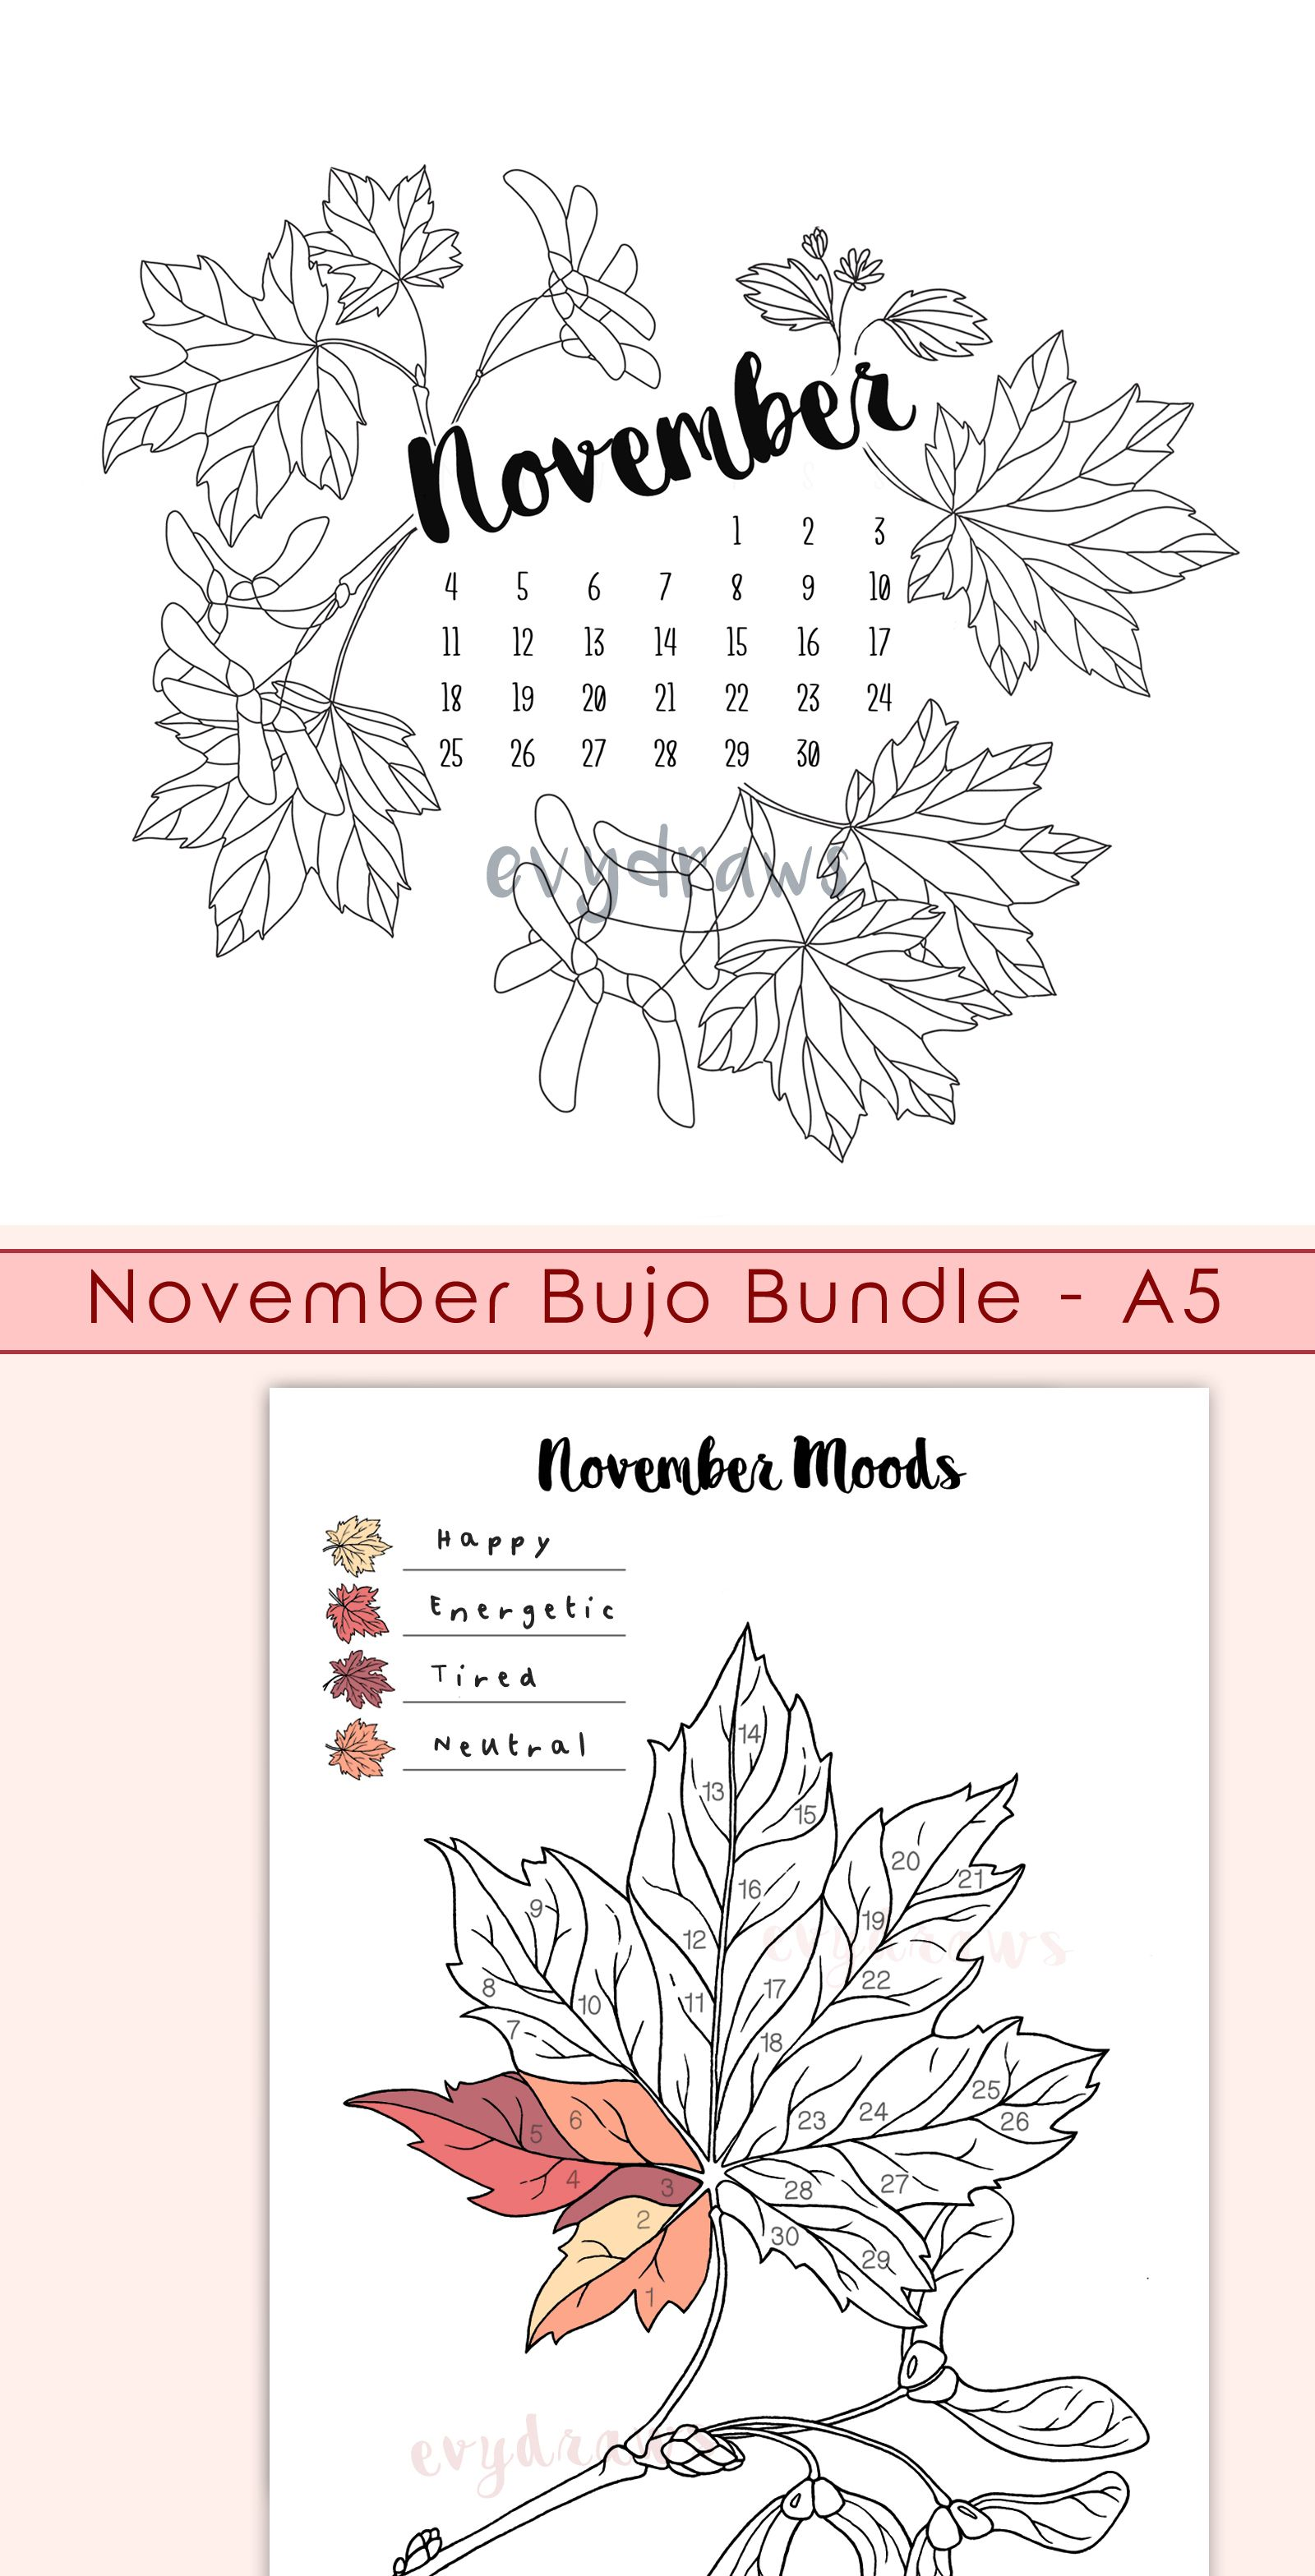 November 2019 Calendar & Bullet Journal Pages #novemberbulletjournalcover